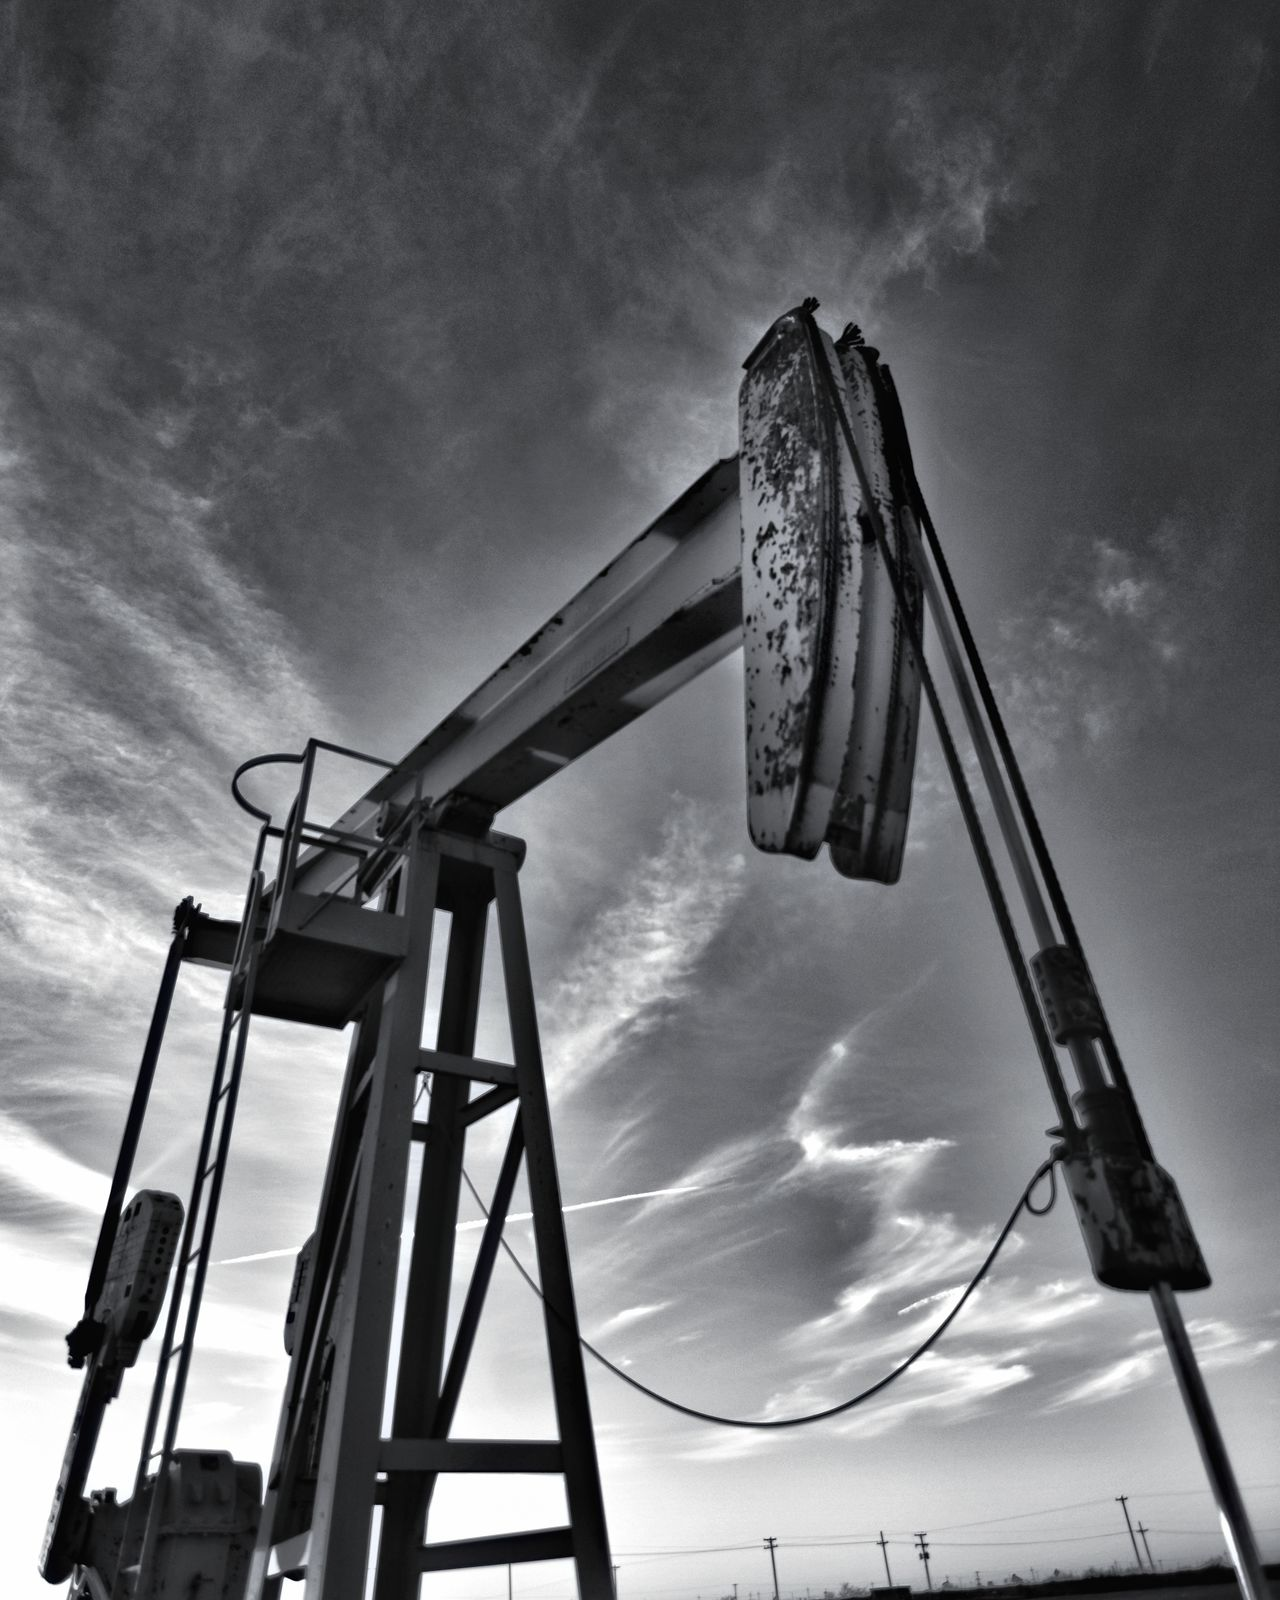 Low Angle View Fuel And Power Generation Drilling Rig Sky No People Oil Pump Outdoors Manufacturing Equipment Oil Field Nature Day Black And White Collection! EyeEm Gallery Eyeemphotography Texas Photographer This Week On Eyeem Dramatic Sky Low Angle View Wideangle Lens